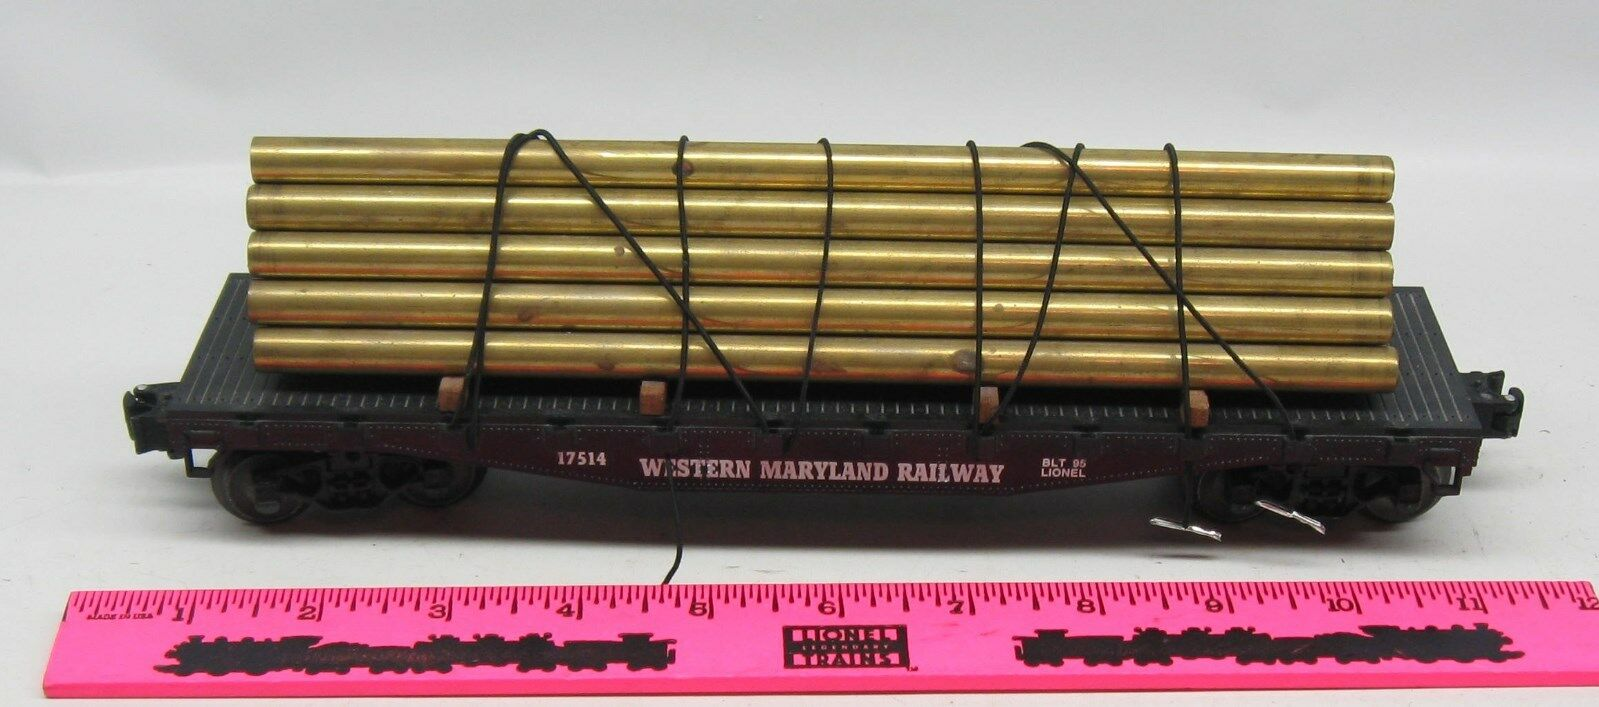 Lionel  17514 Western Maryland Railway flatcar with metal pipes